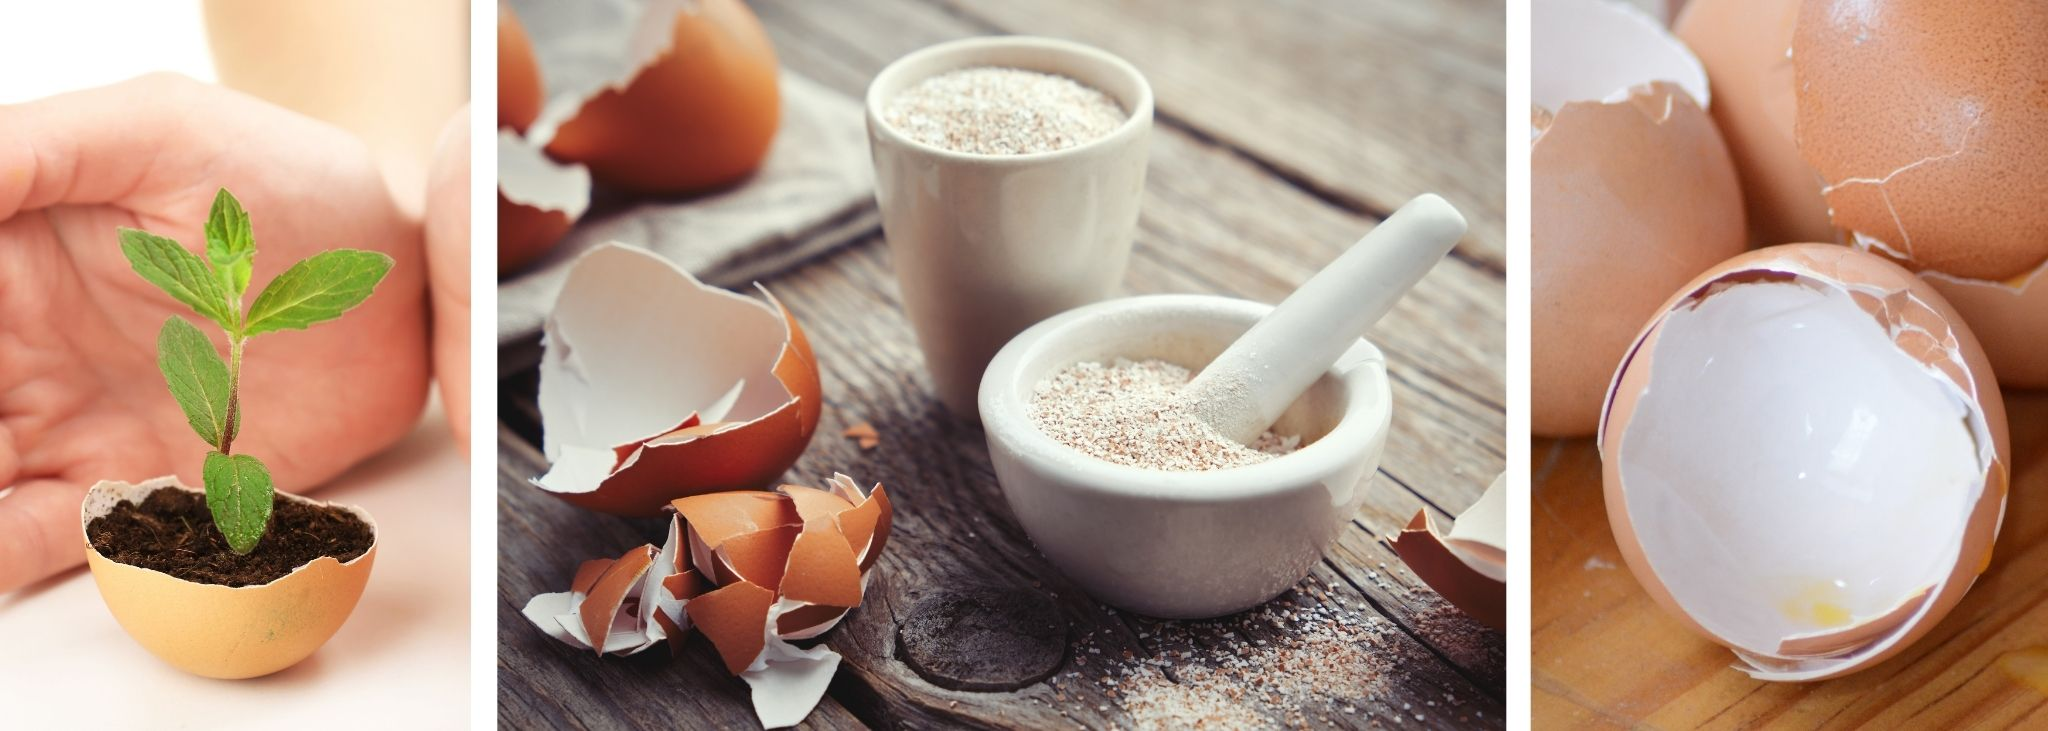 WHY YOU SHOULDN'T BE THROWING EGGSHELLS AWAY